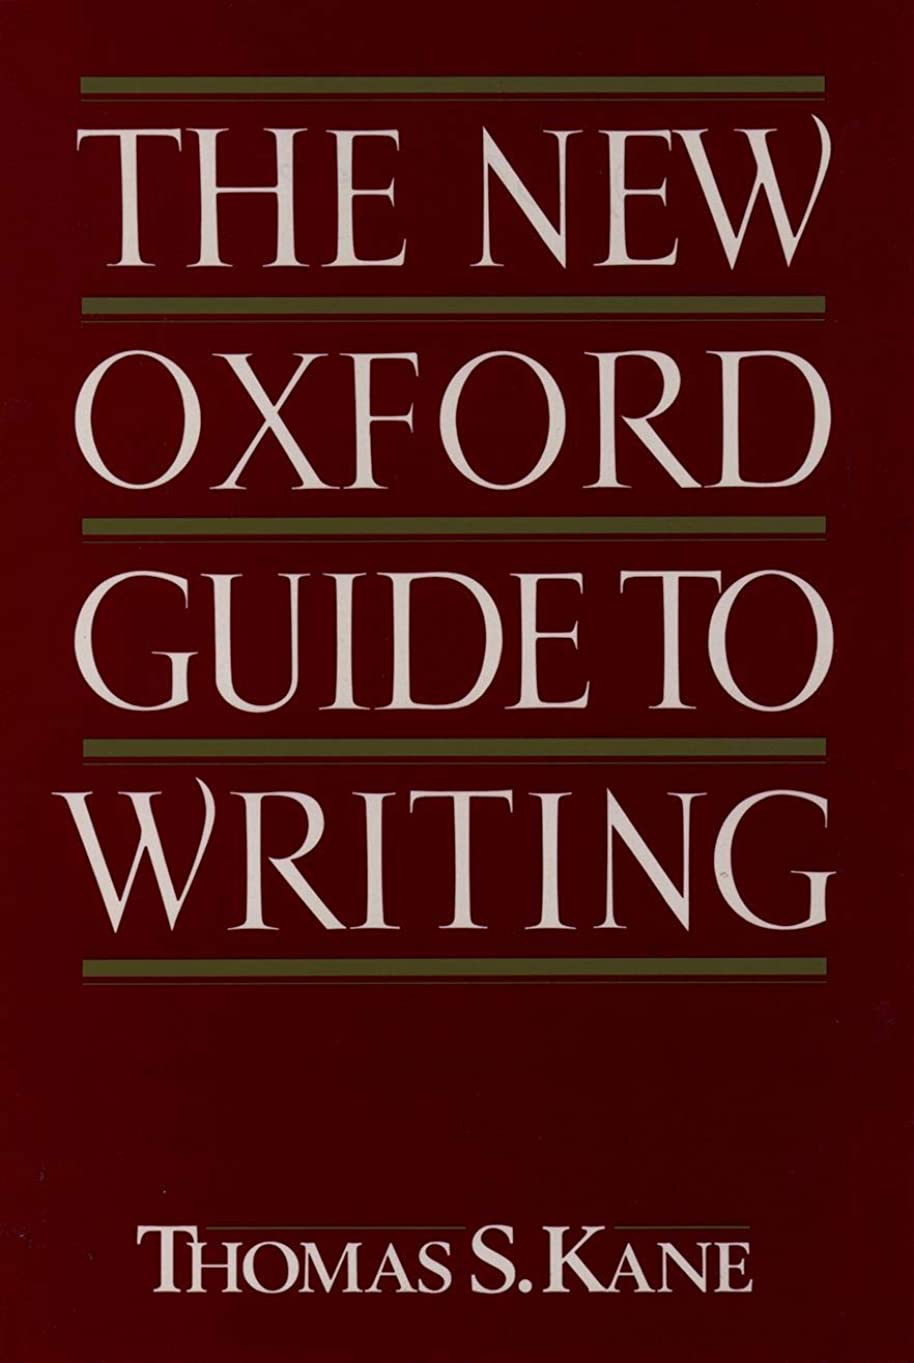 サラダパントリー単調なThe New Oxford Guide to Writing